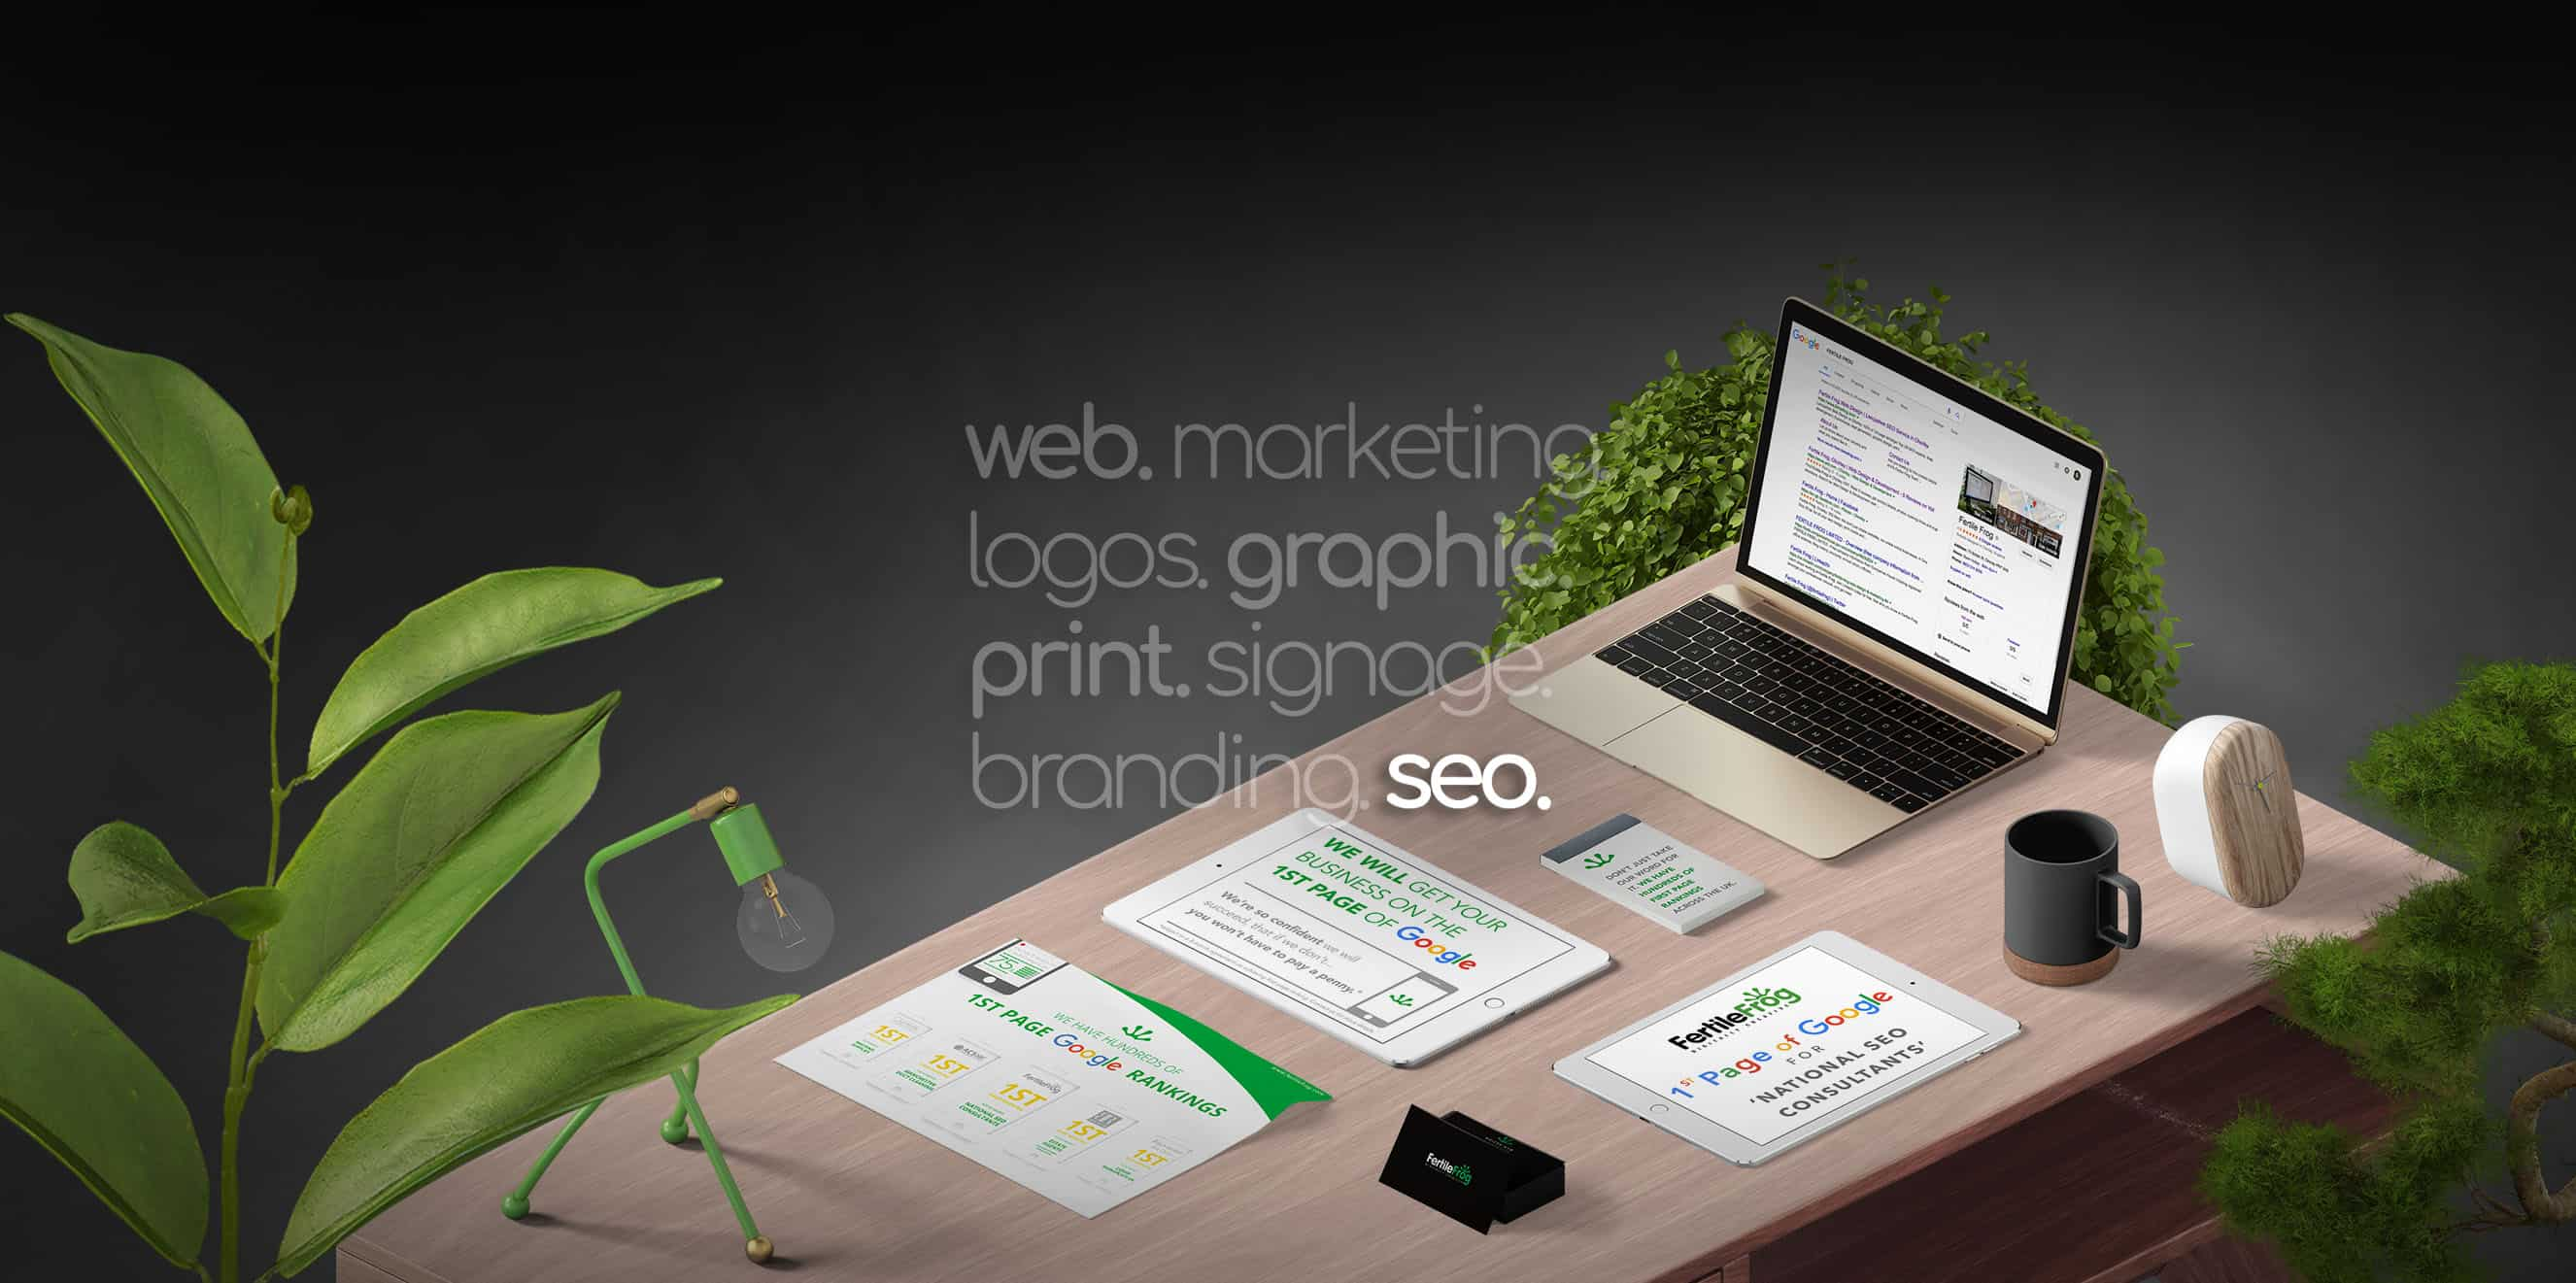 Fertile Frog SEO work on table with mac book, phone, ipad, paper showing work